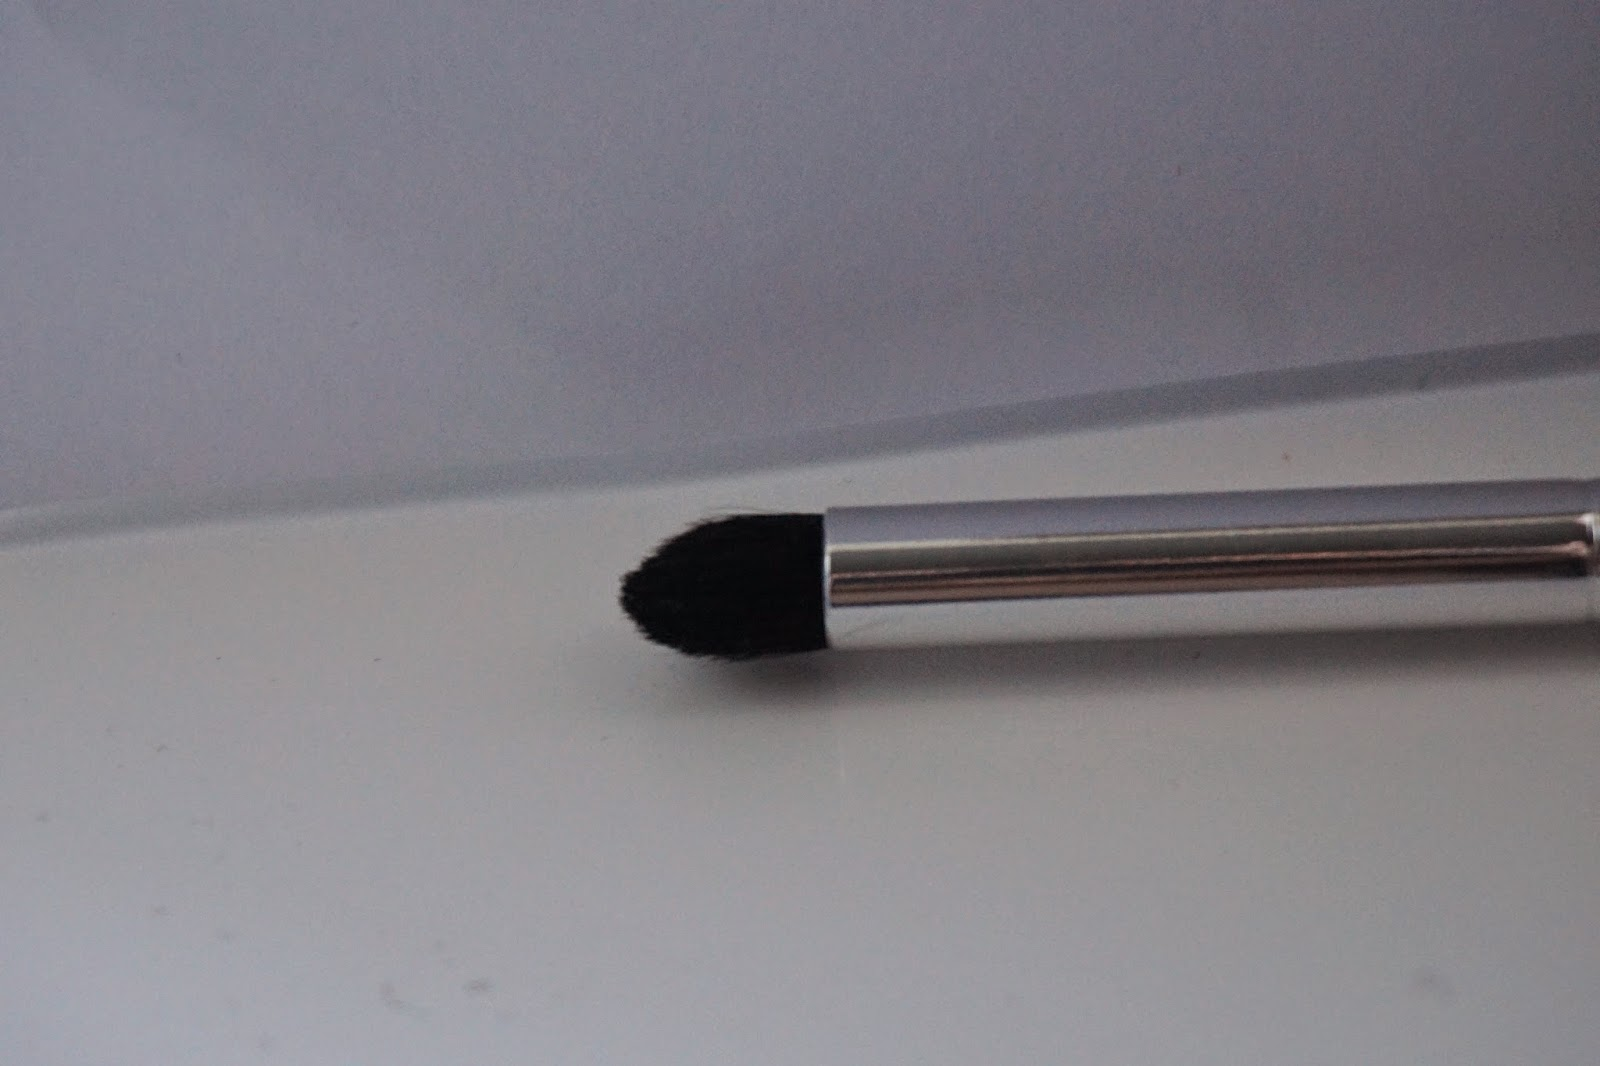 Crown Brush Review C321 Bullet Crease - Dusty Foxes Beauty